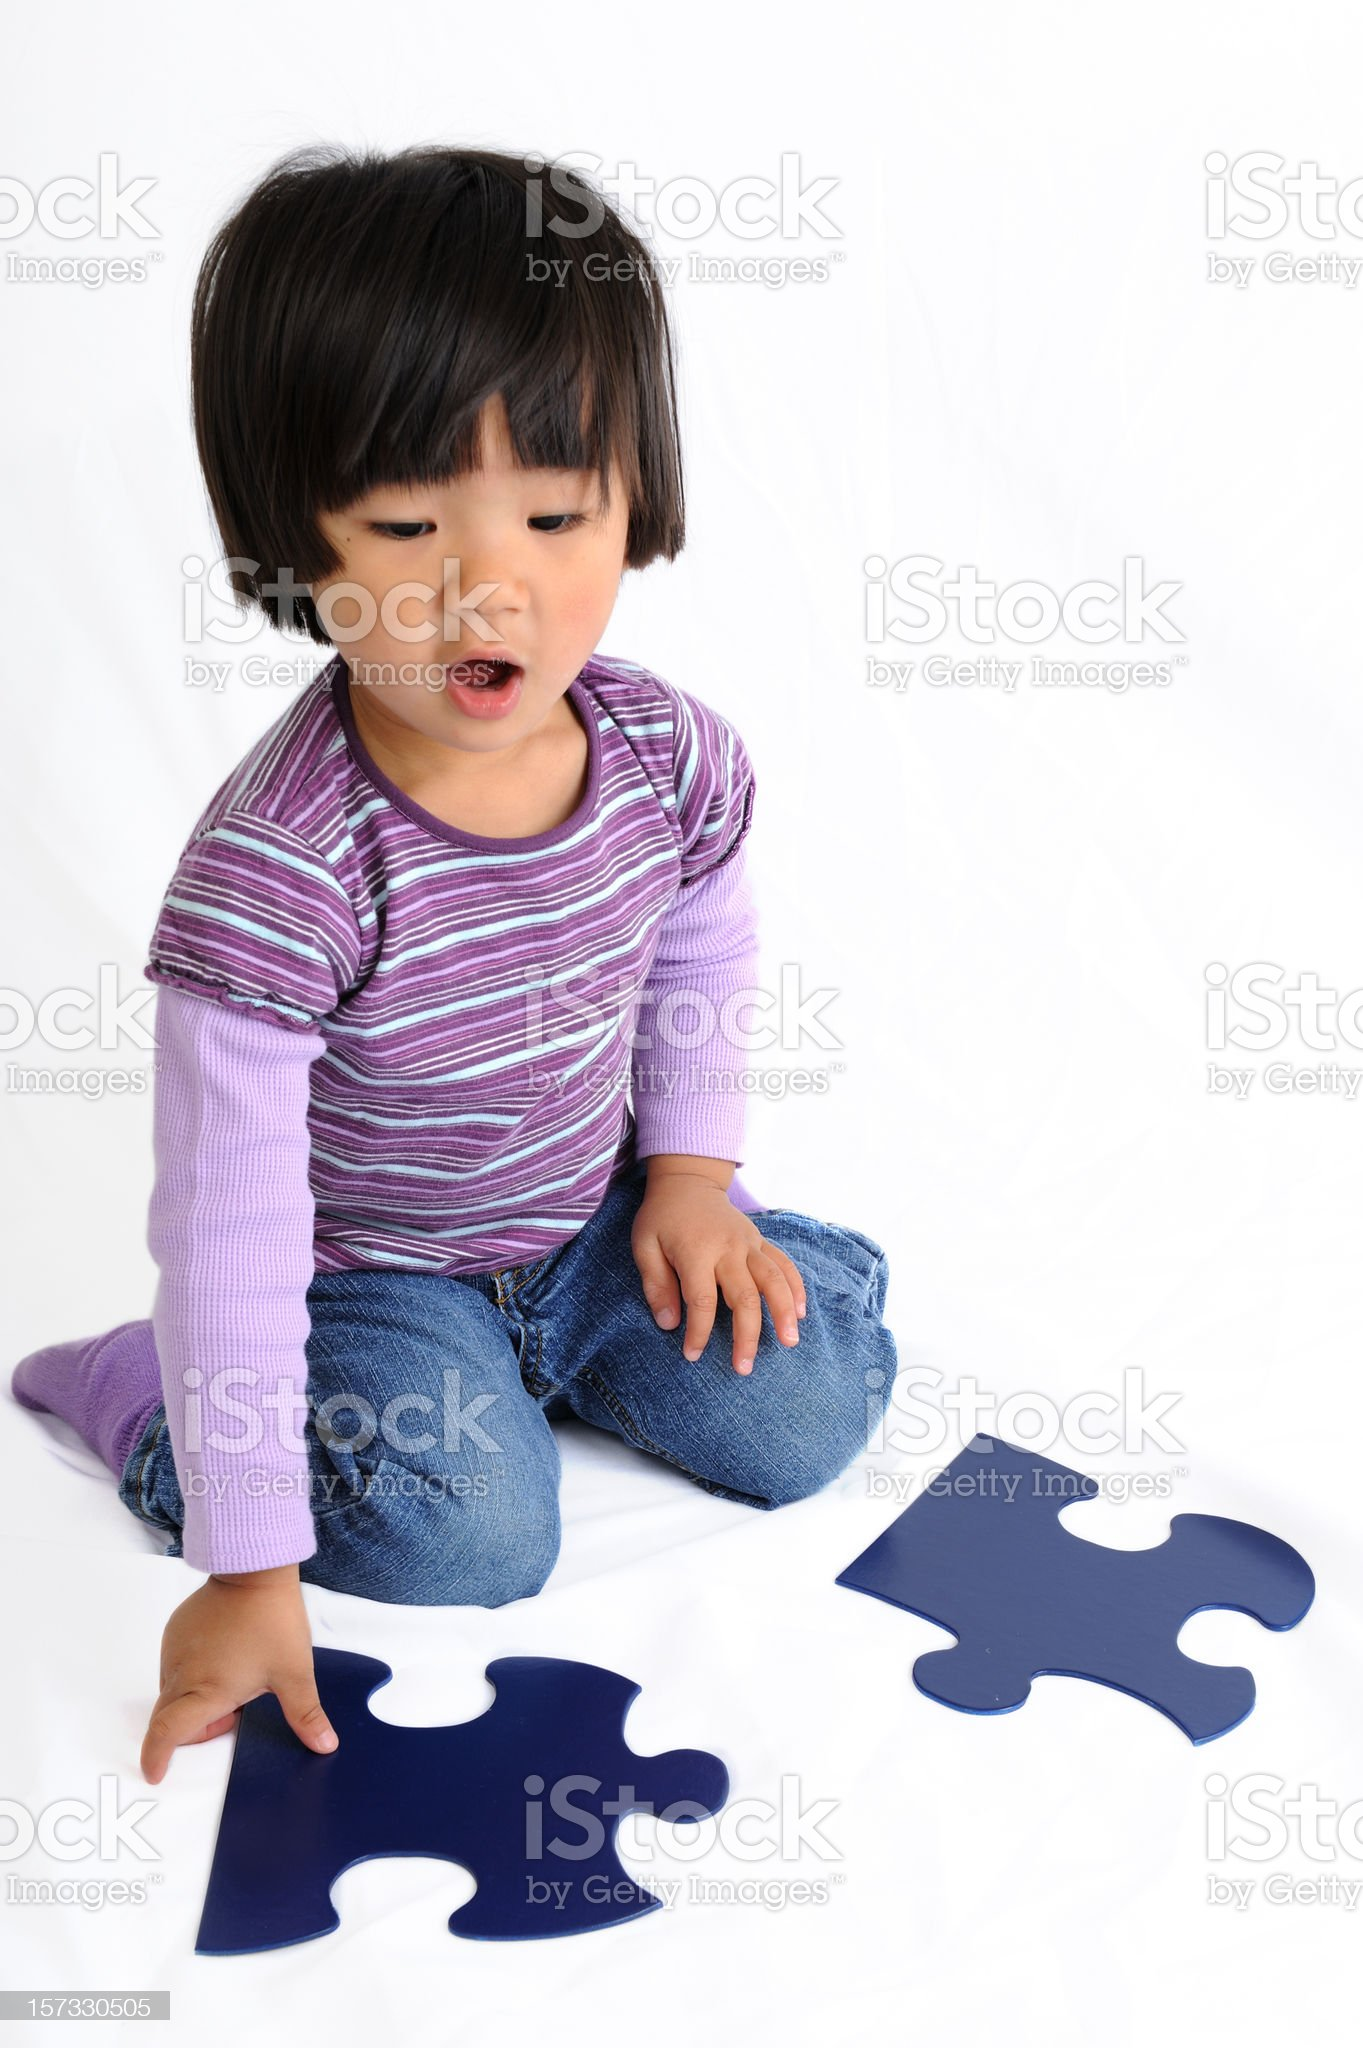 Young Girl Playing With Puzzle Pieces royalty-free stock photo